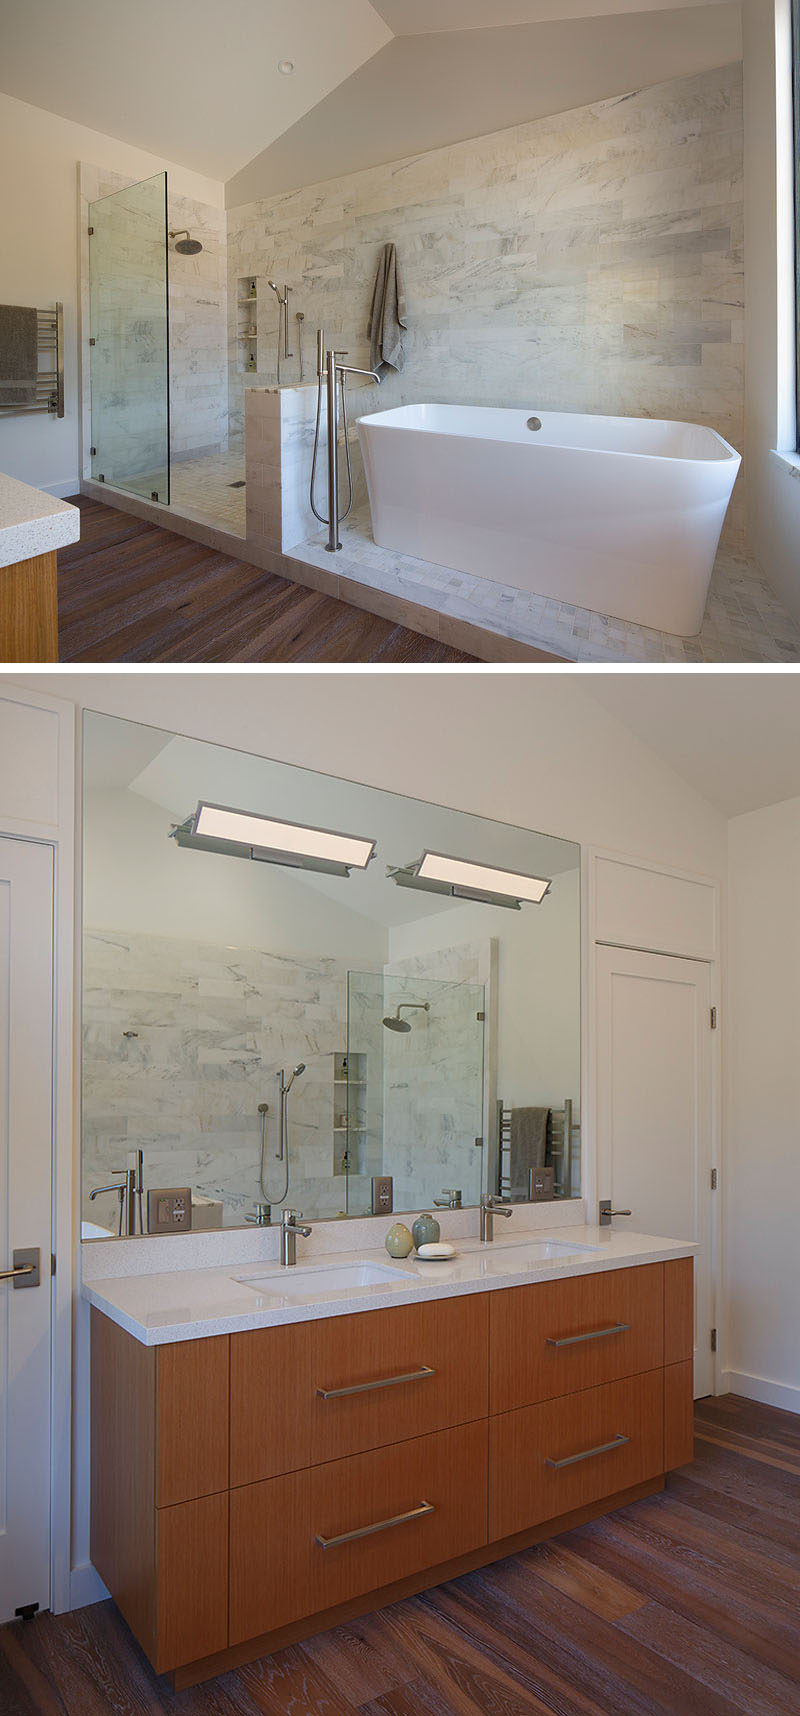 In this modern bathroom, a high ceiling makes the room feel spacious, while a tiled area is home to the walk-in shower and the freestanding white bathtub. On the opposite wall, a wood vanity is topped with a white counter and a large mirror helps to reflect light. #ModernBathroom #BathroomDesign